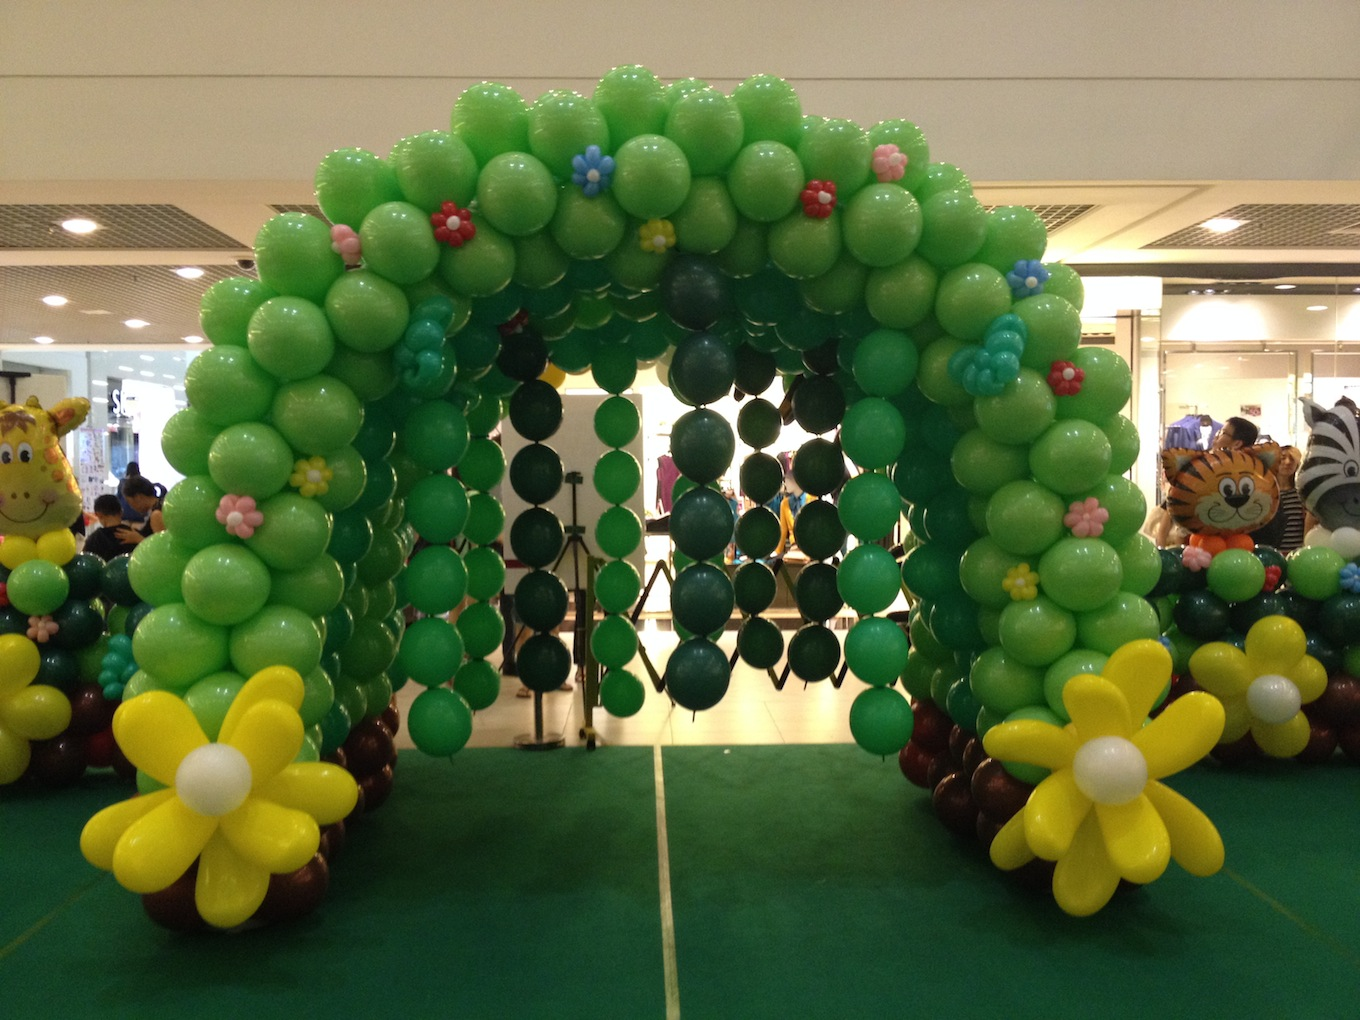 Balloon decoration ideas that balloons for Ballom decoration